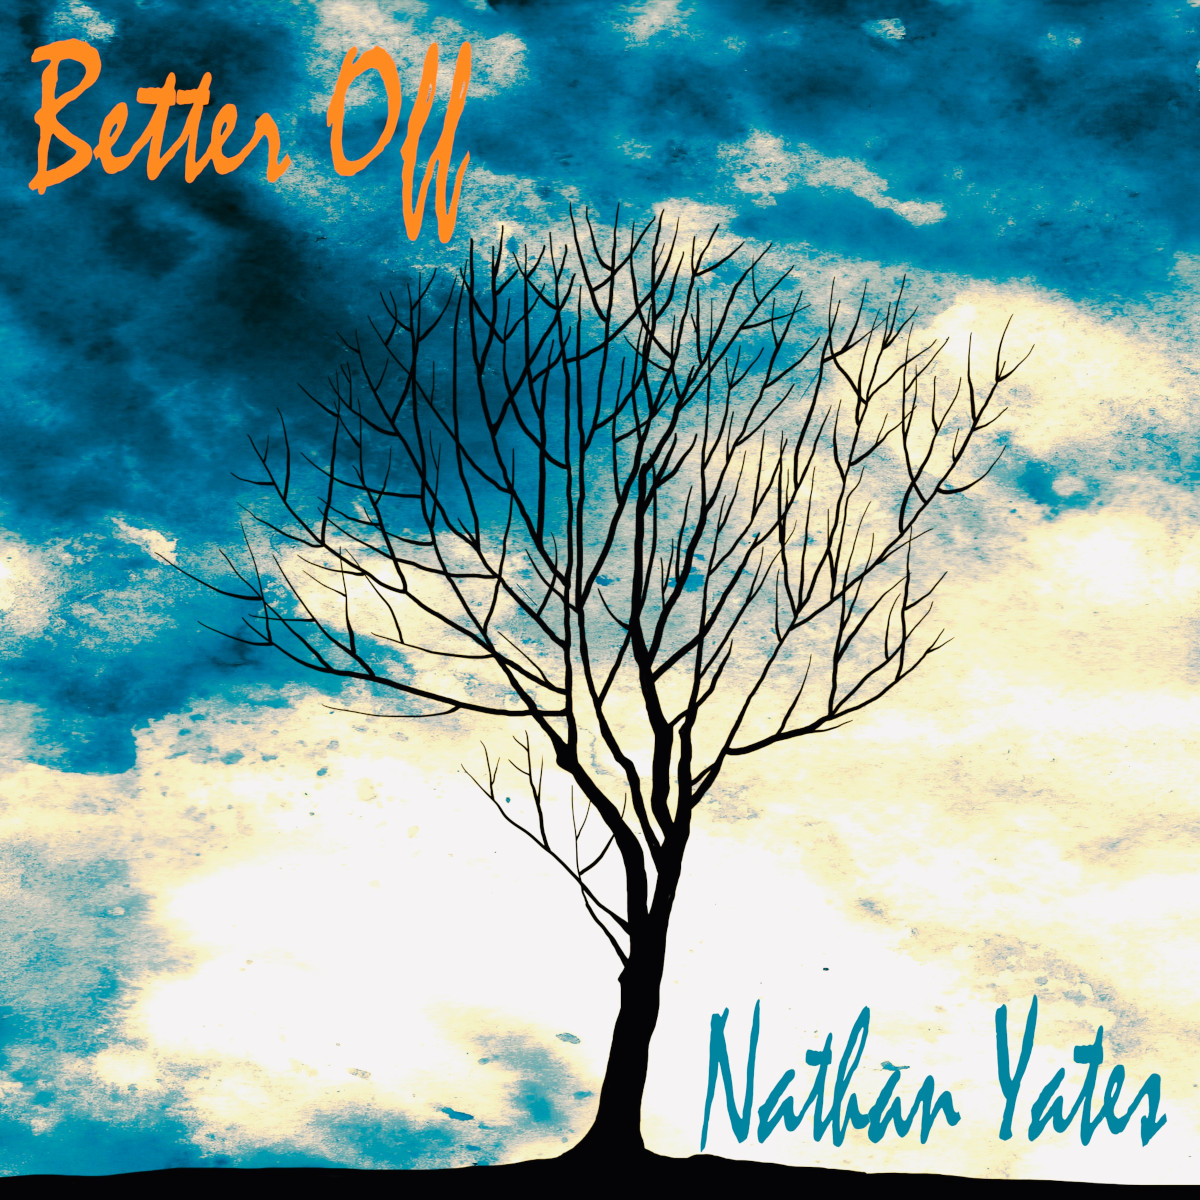 """New York City based singer/songwriter Nathan Yates delivers a heartbreaking Alt-Country goodbye letter to a former lover on his new single """"Better Off"""" #singersongwriter #altcountry #breakupsongs #music #nyc #musicblog #blogger @nathanyates"""